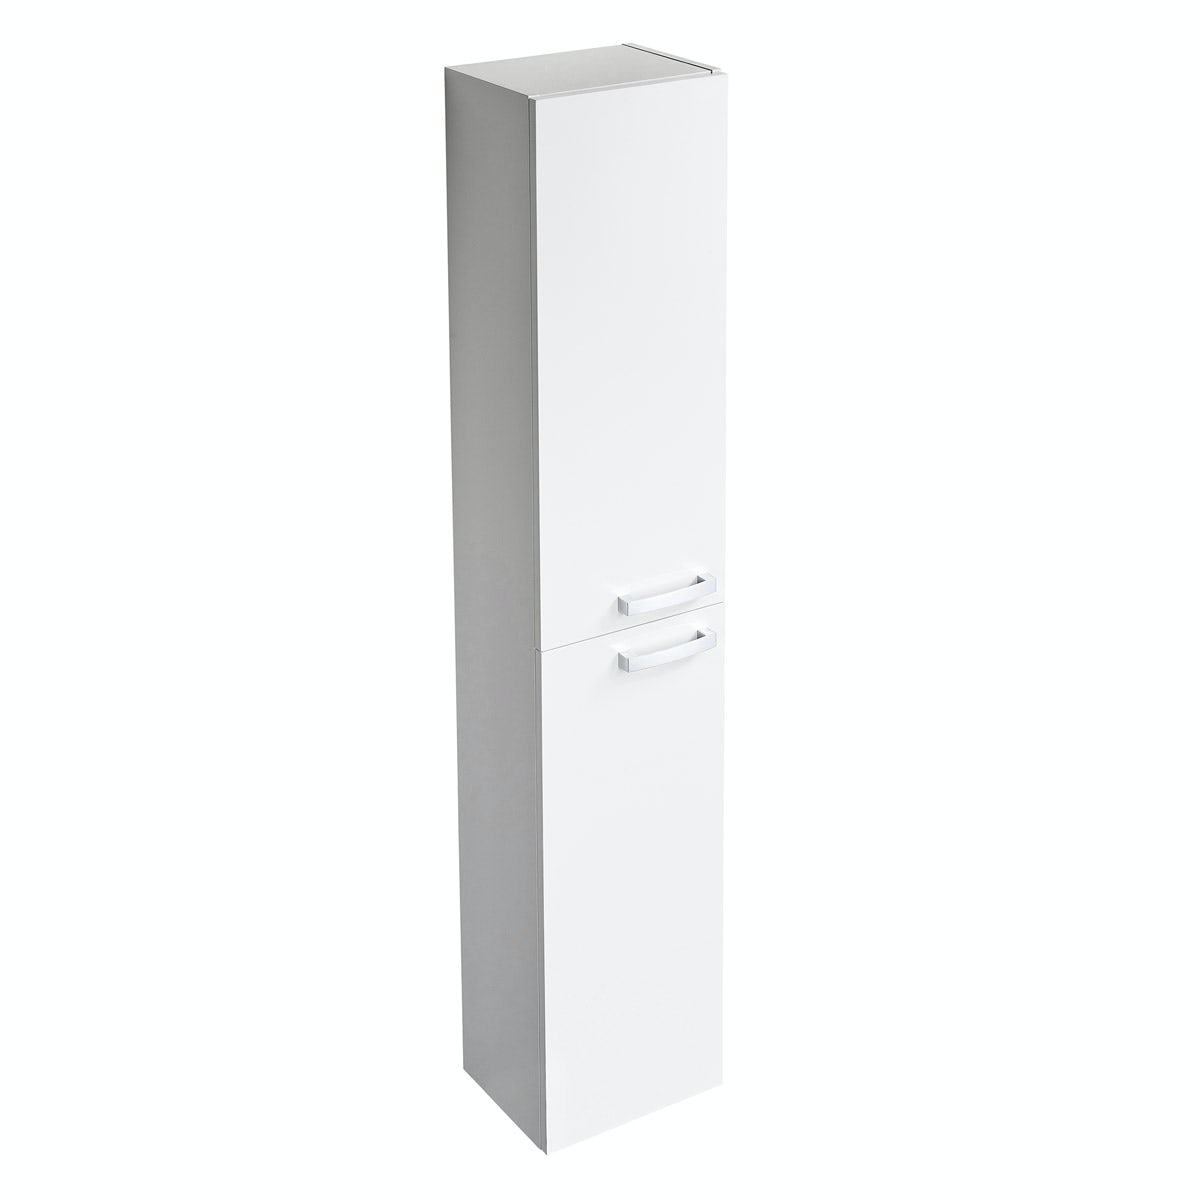 Ideal Standard Tempo gloss white storage unit 235mm